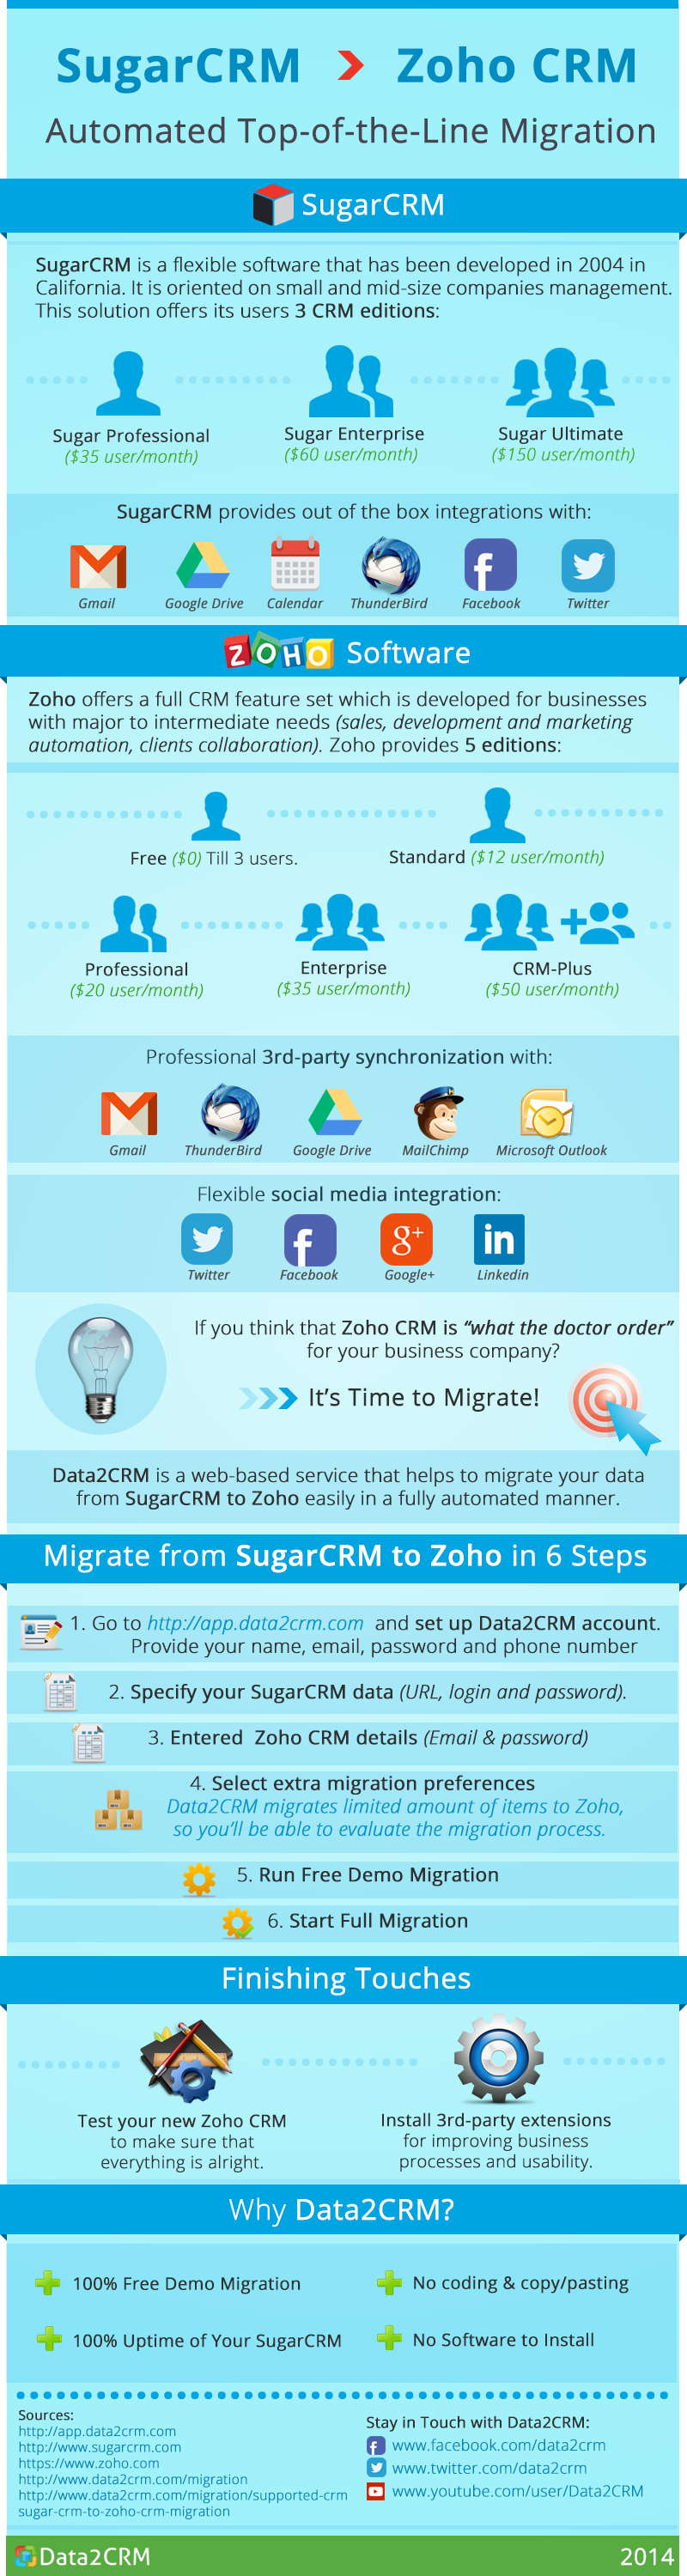 SugarCRM-to-Zoho-infographic